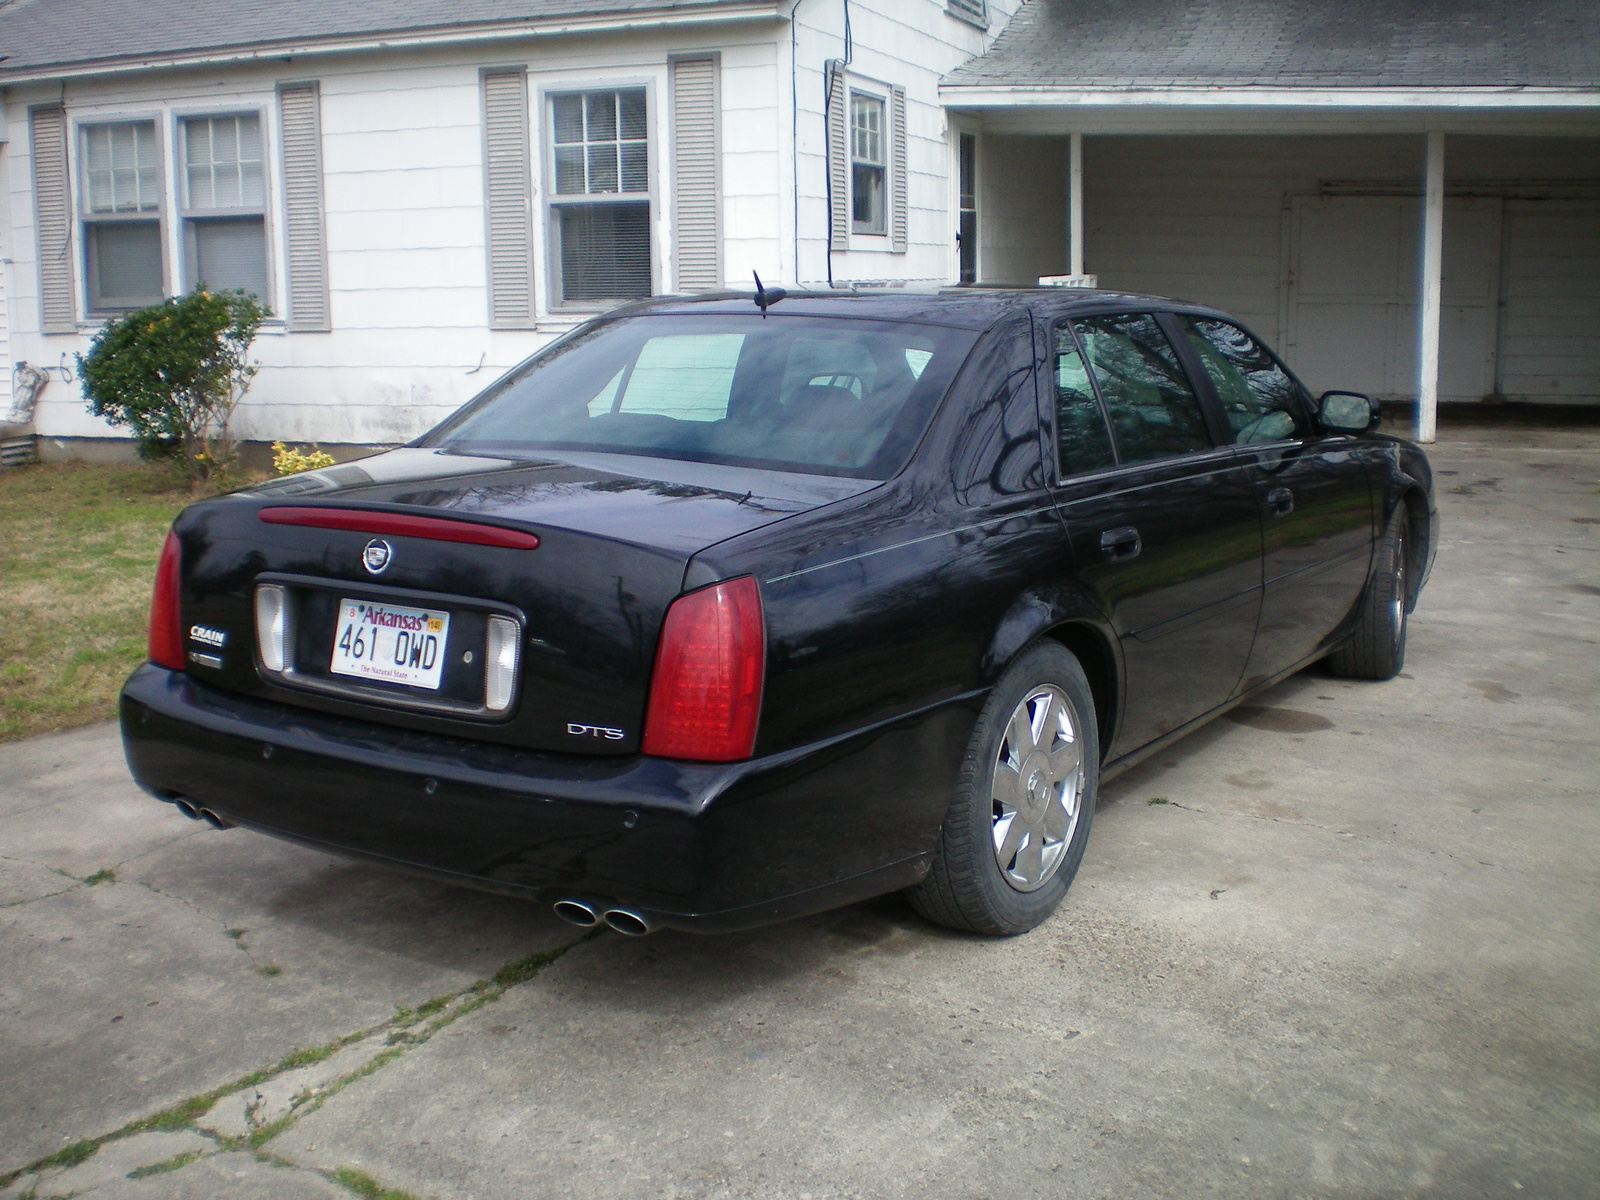 2006 Cadillac DTS - Overview - CarGurus